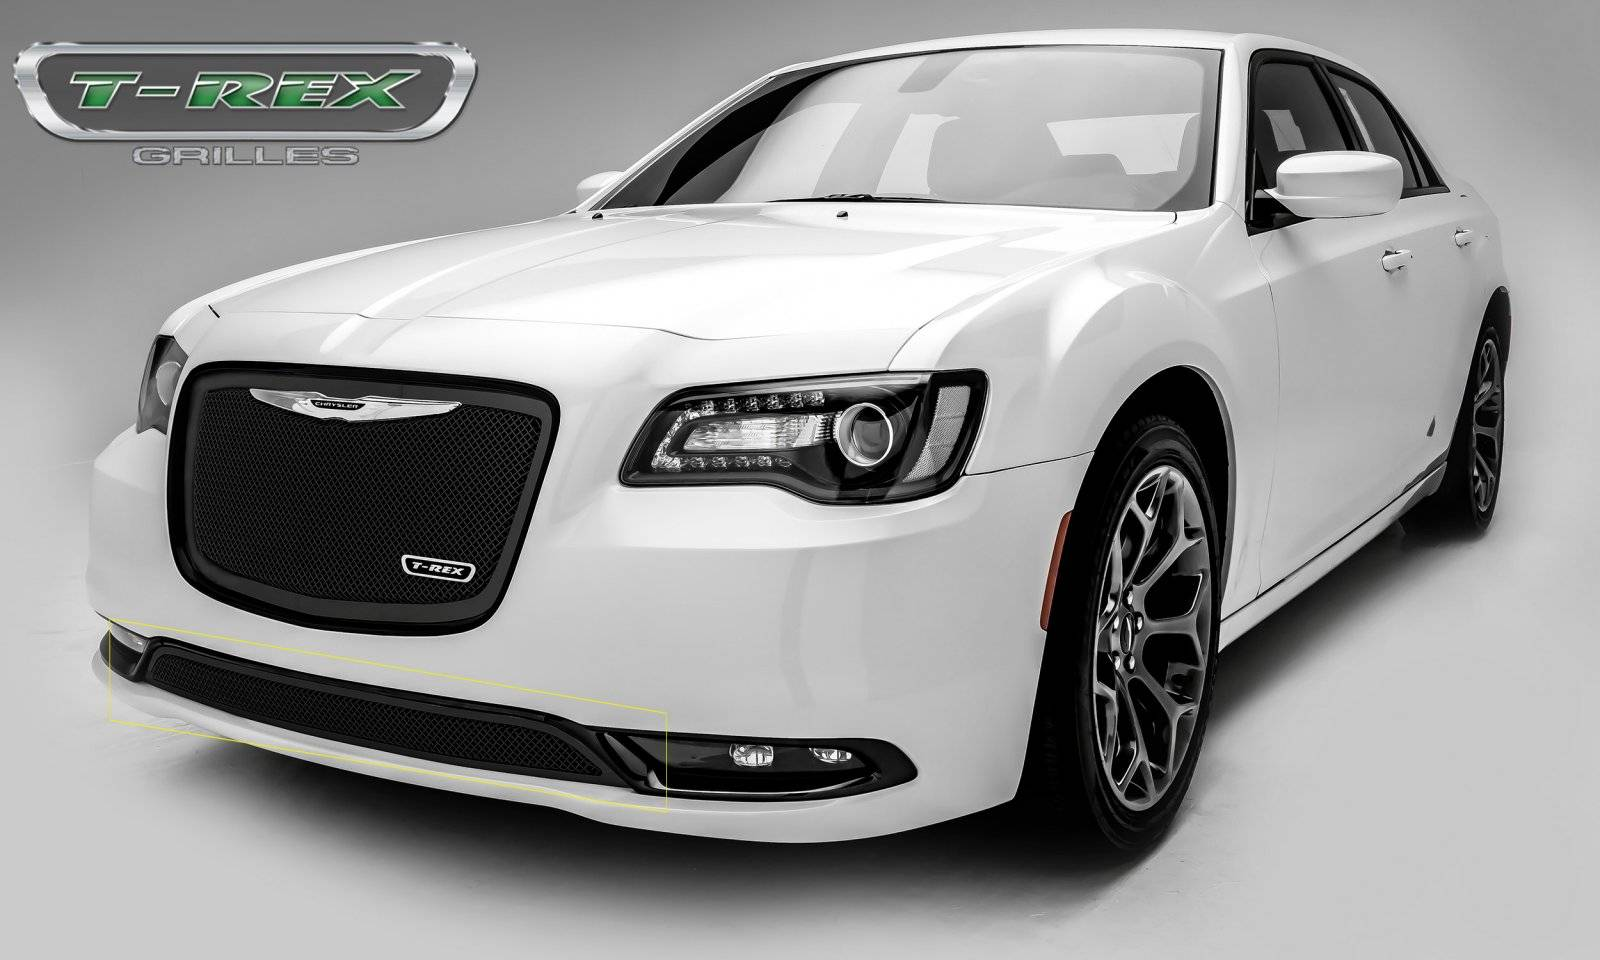 T-REX Grilles - 2015-2018 Chrysler 300 Upper Class Bumper Grille, Black, 1 Pc, Overlay, Only fits models without adaptive cruise control - PN #52436